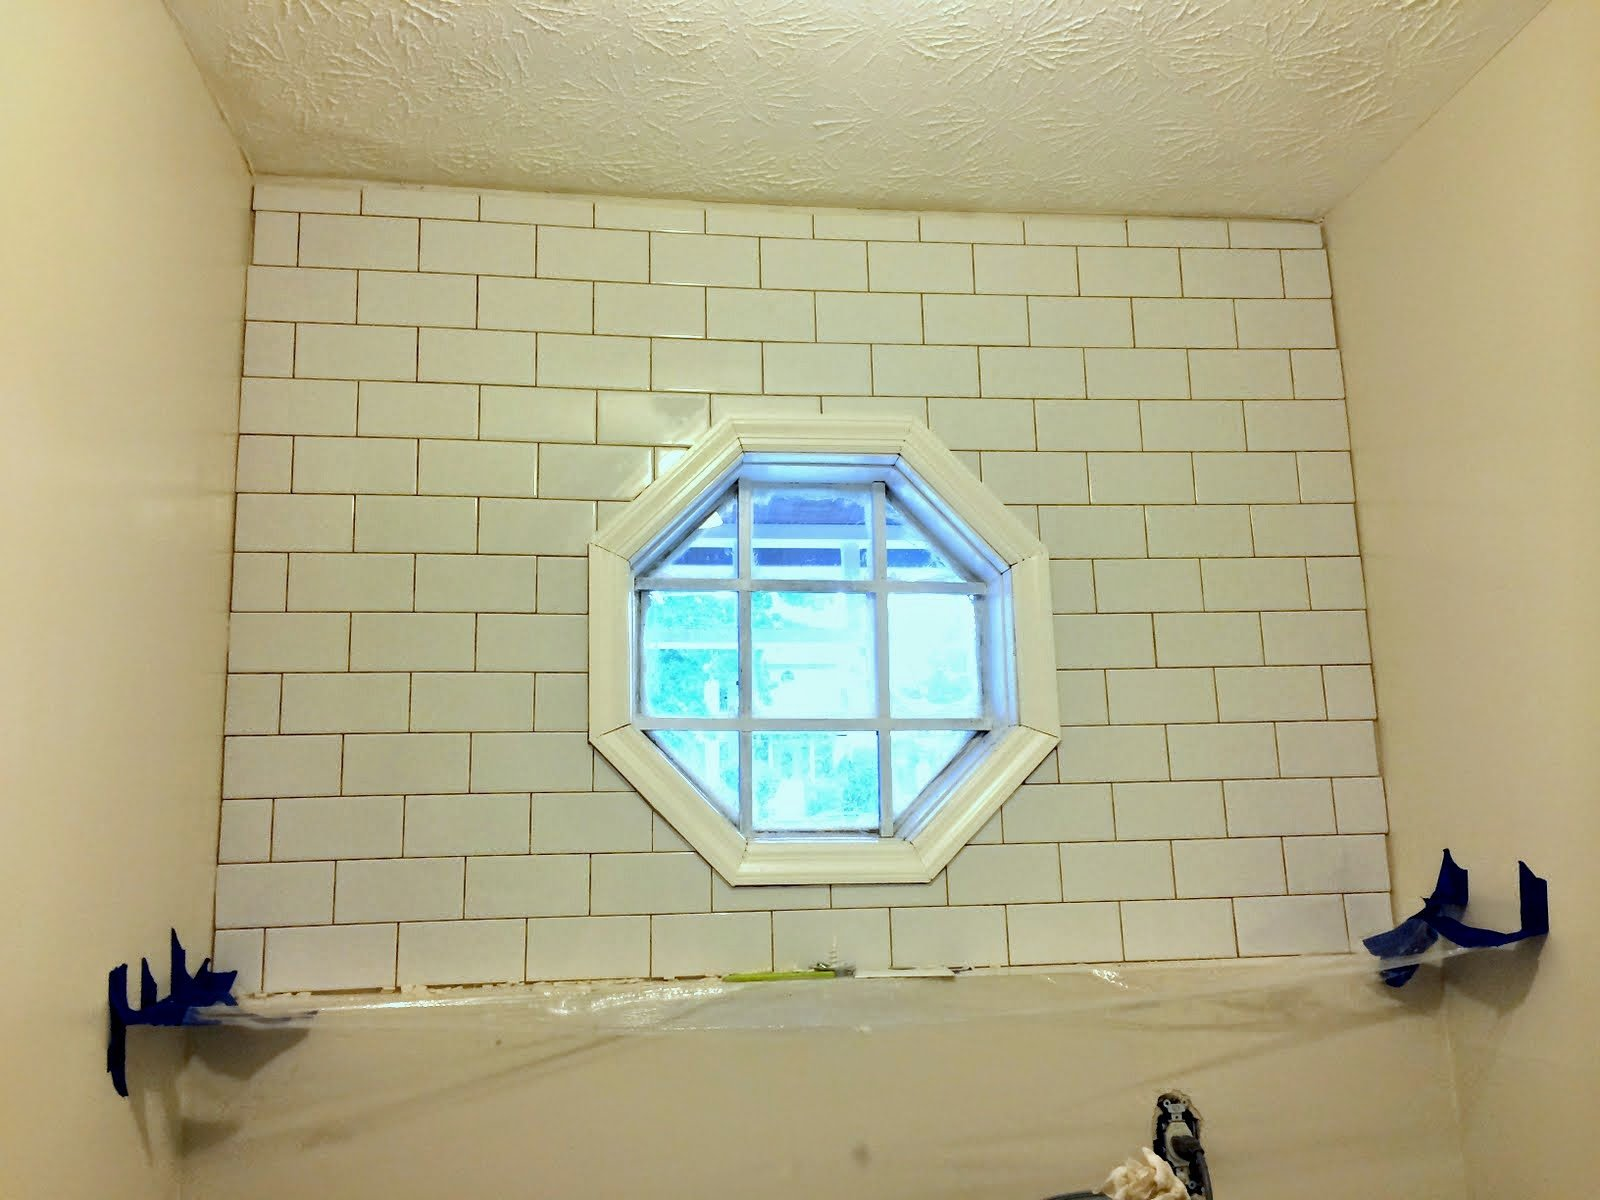 Laundry Room Tile Backsplash • Ugly Duckling House